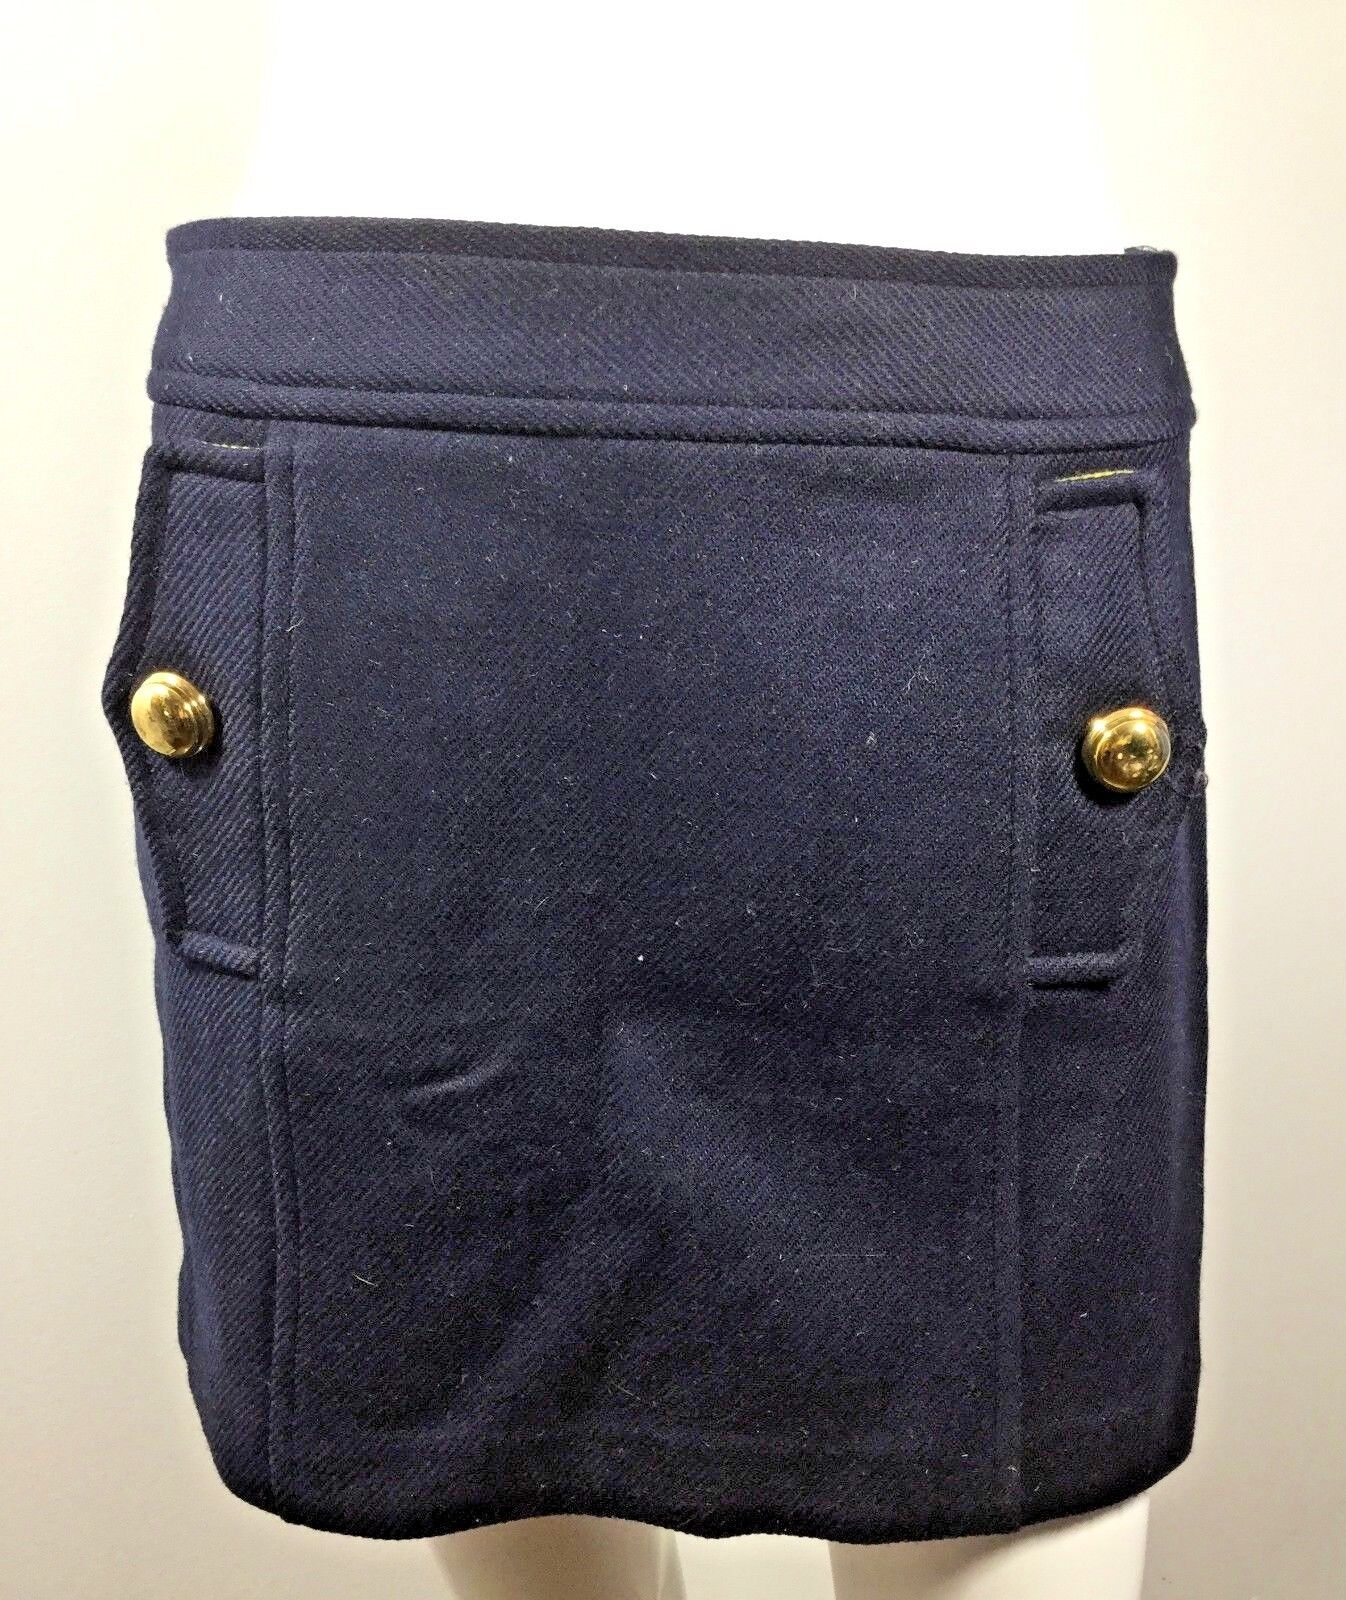 MILLY OF NEW YORK Navy bluee Above Knee Length Skirt Size 4